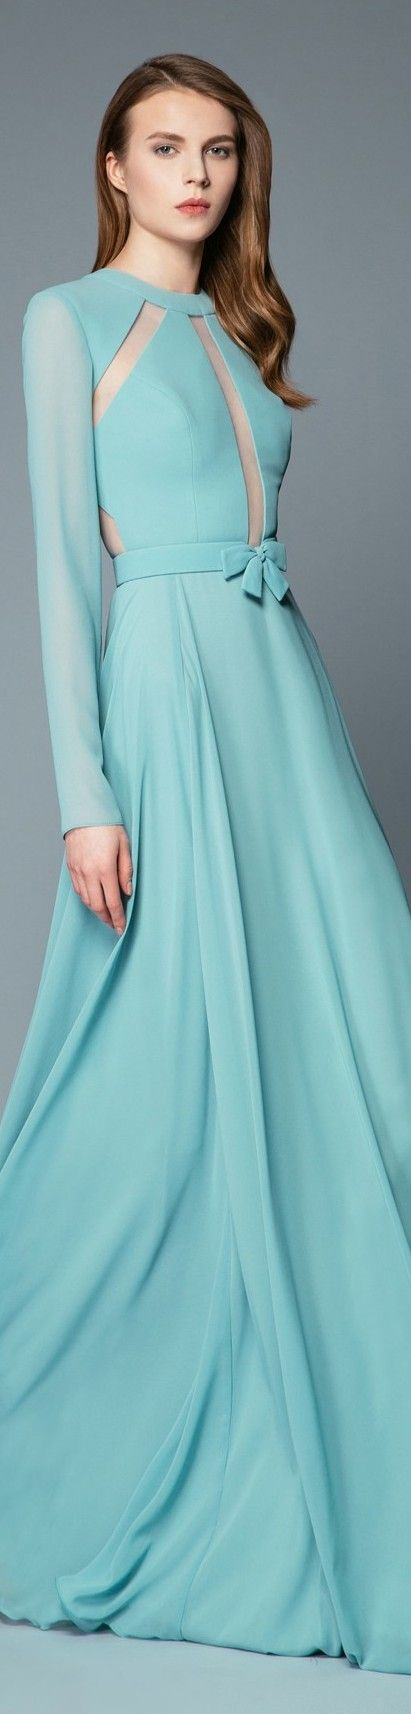 GH by Georges Hobeika FW 2016/17